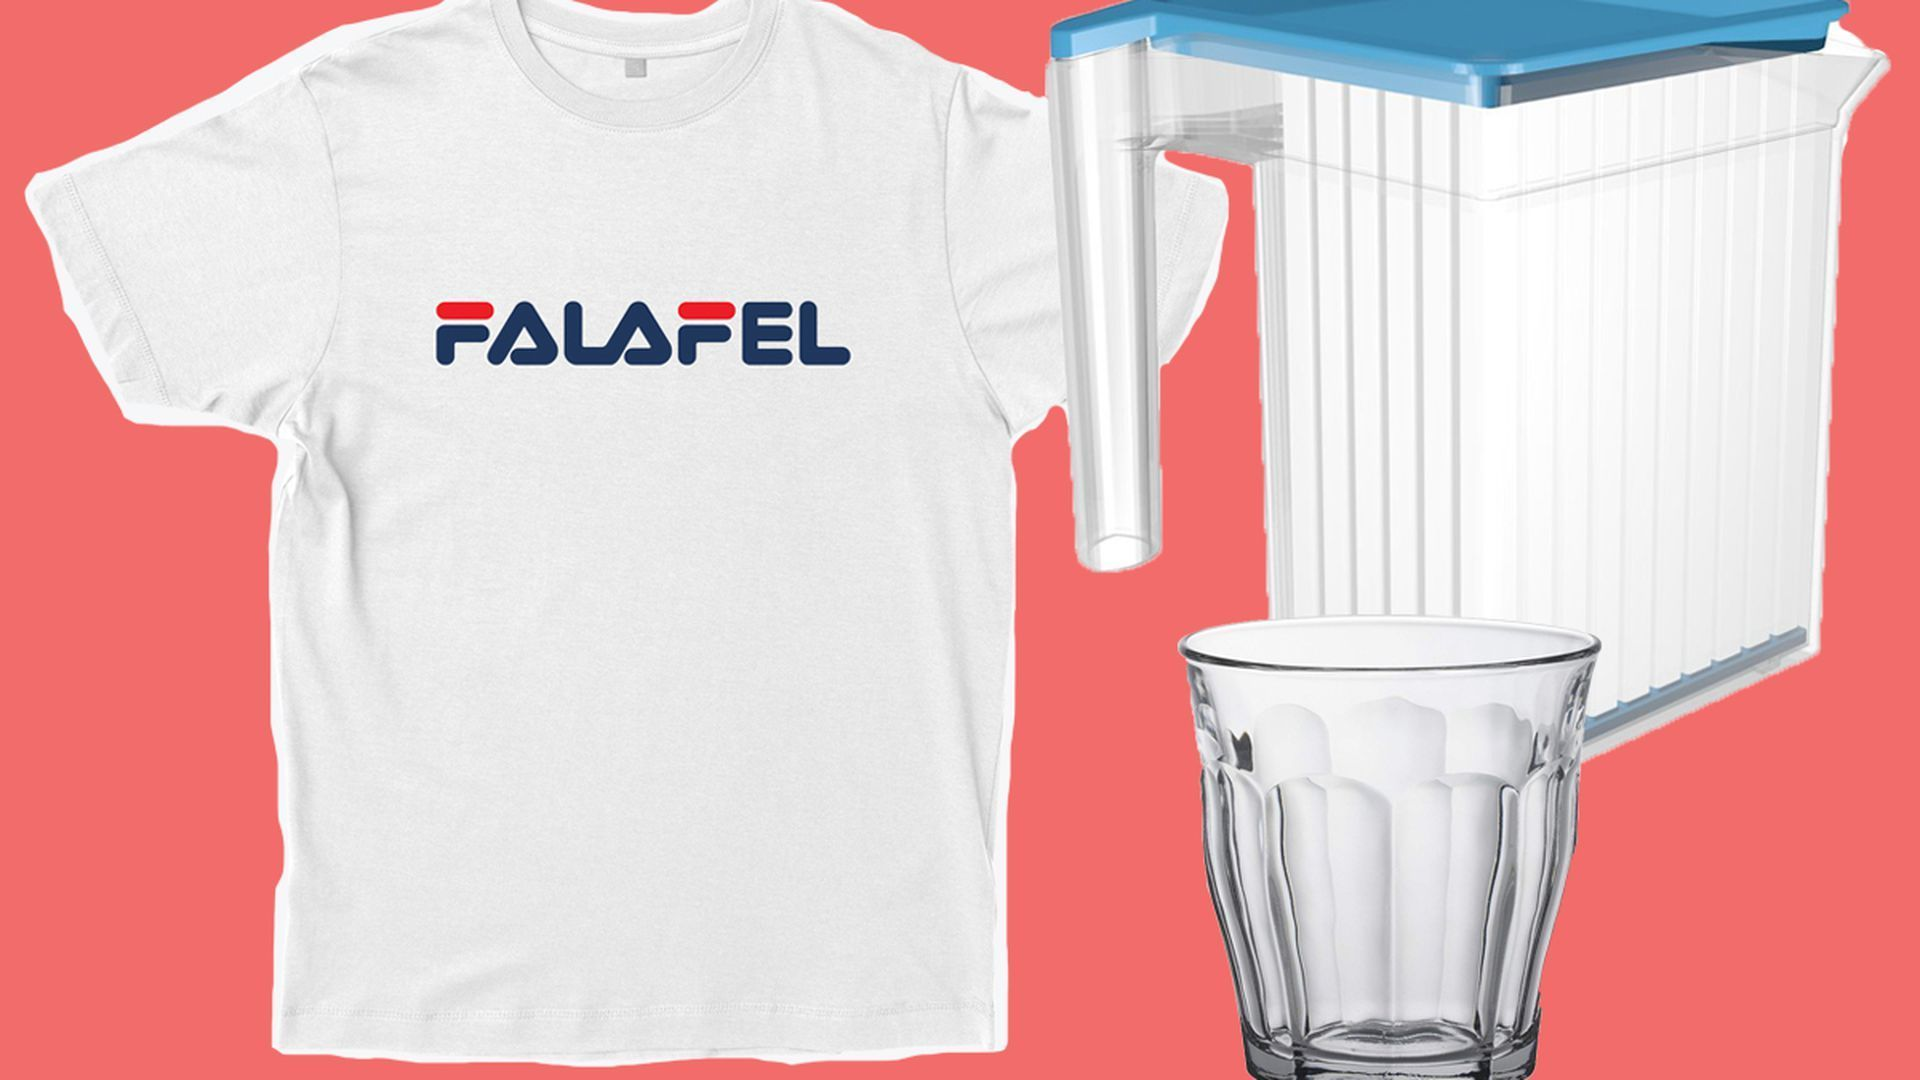 A Falafel T Shirt A Cheap Wine Glass And More Things To Buy This Week Clever Shirts Ideas Of Clever Shirts Clevers In 2020 Clever Shirt Clever Shirt Design Shirts